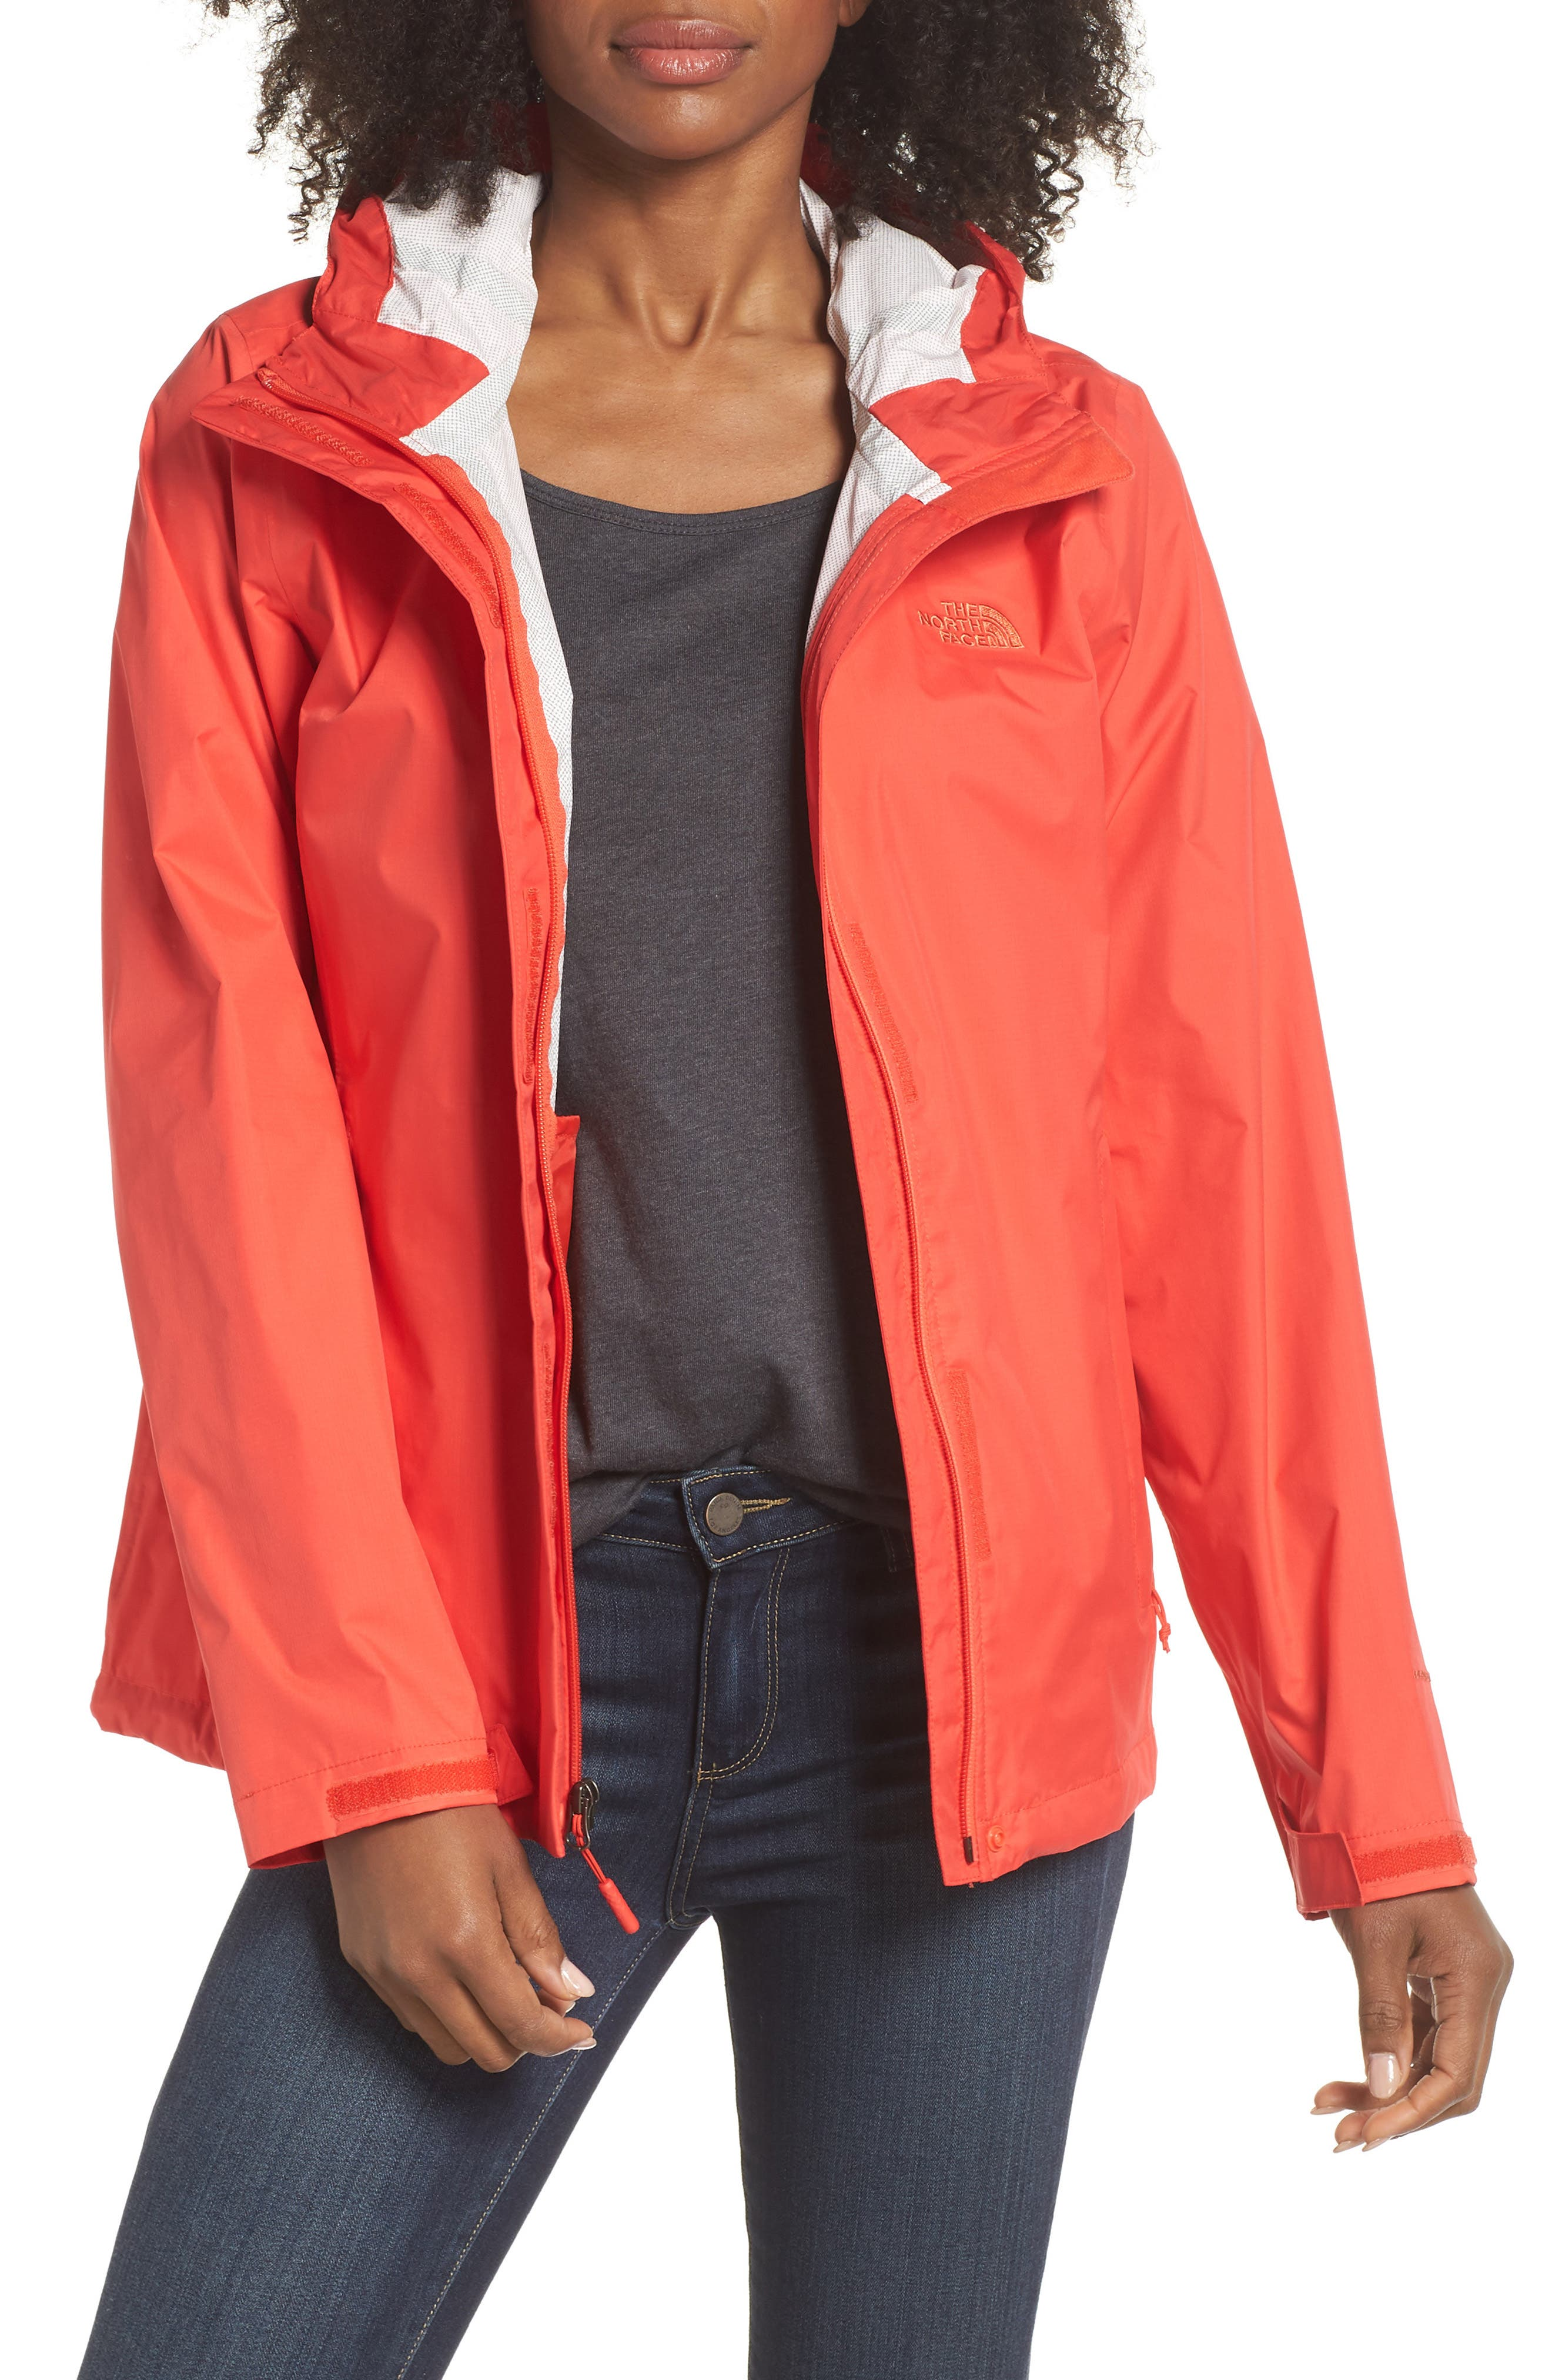 THE NORTH FACE, Venture 2 Waterproof Jacket, Main thumbnail 1, color, JUICY RED